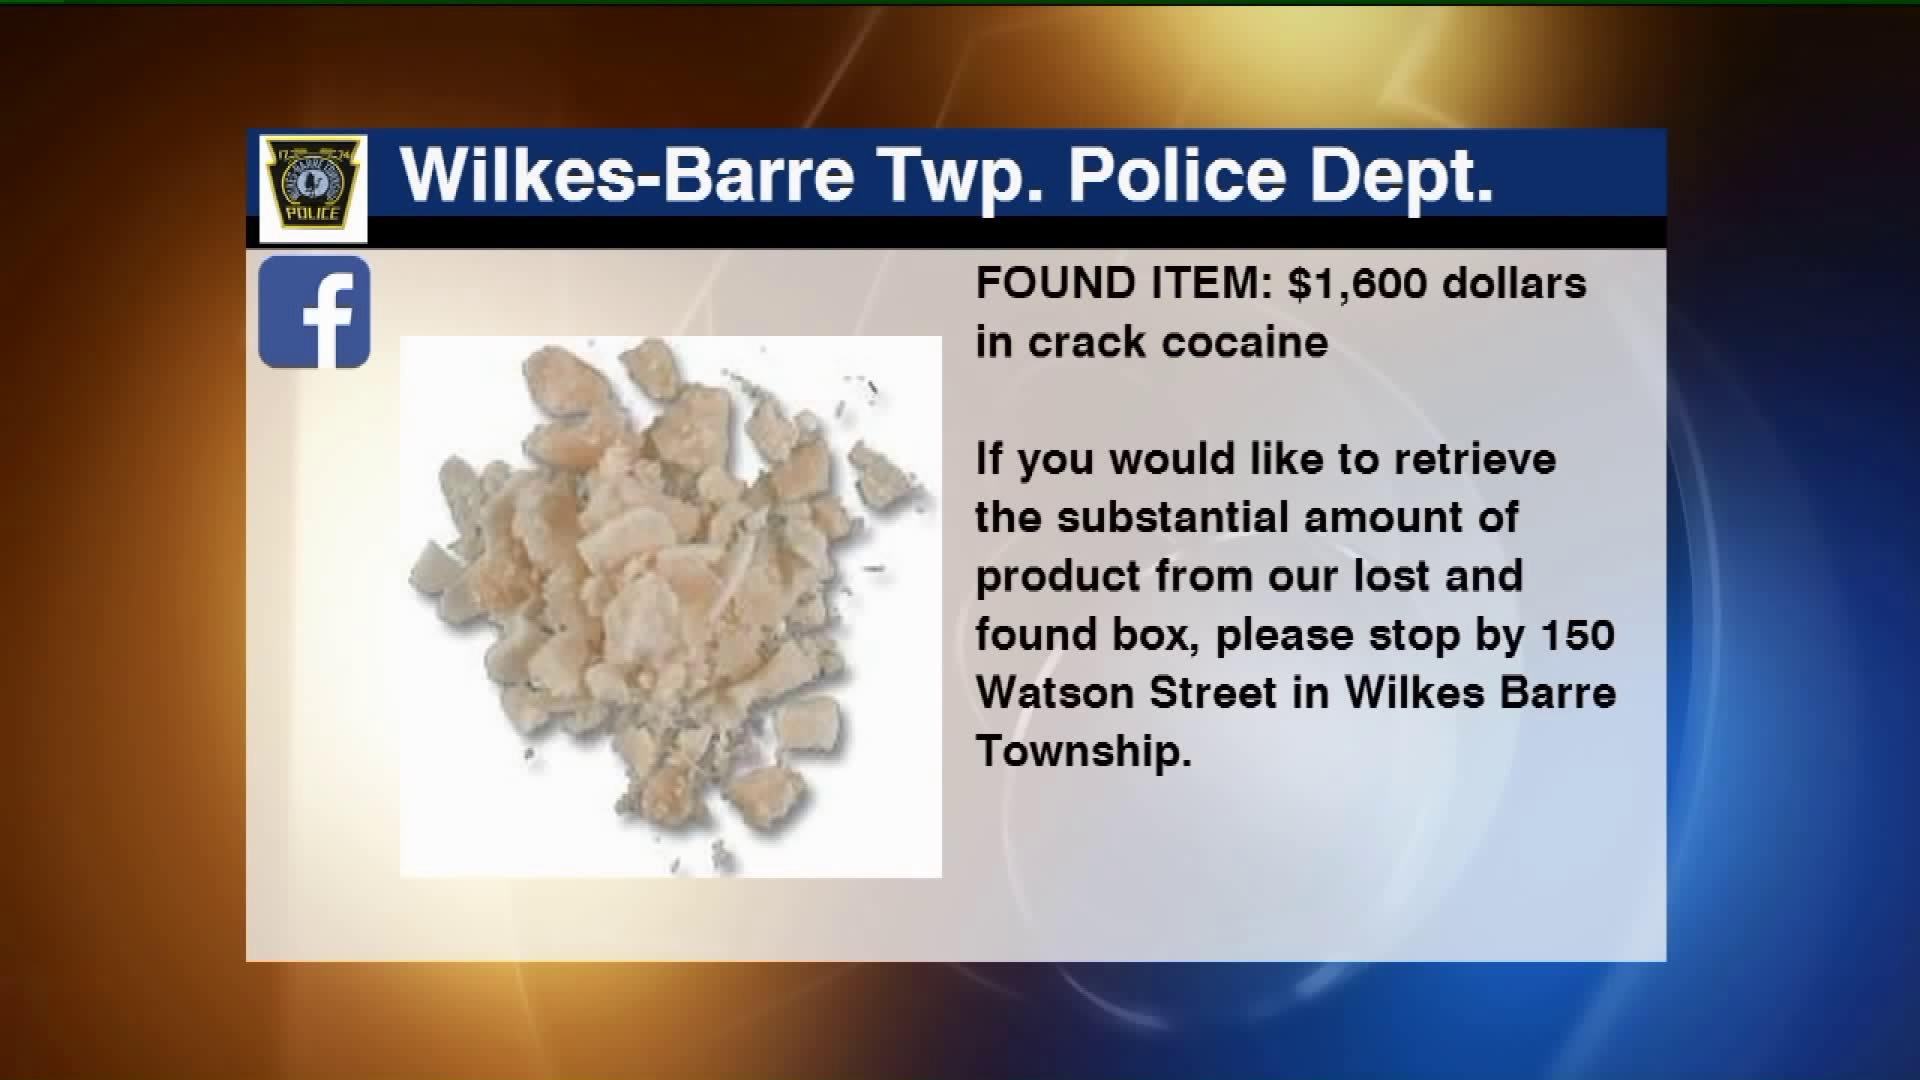 Police Department Asks Crack Owner to Claim Drugs in Facebook Post